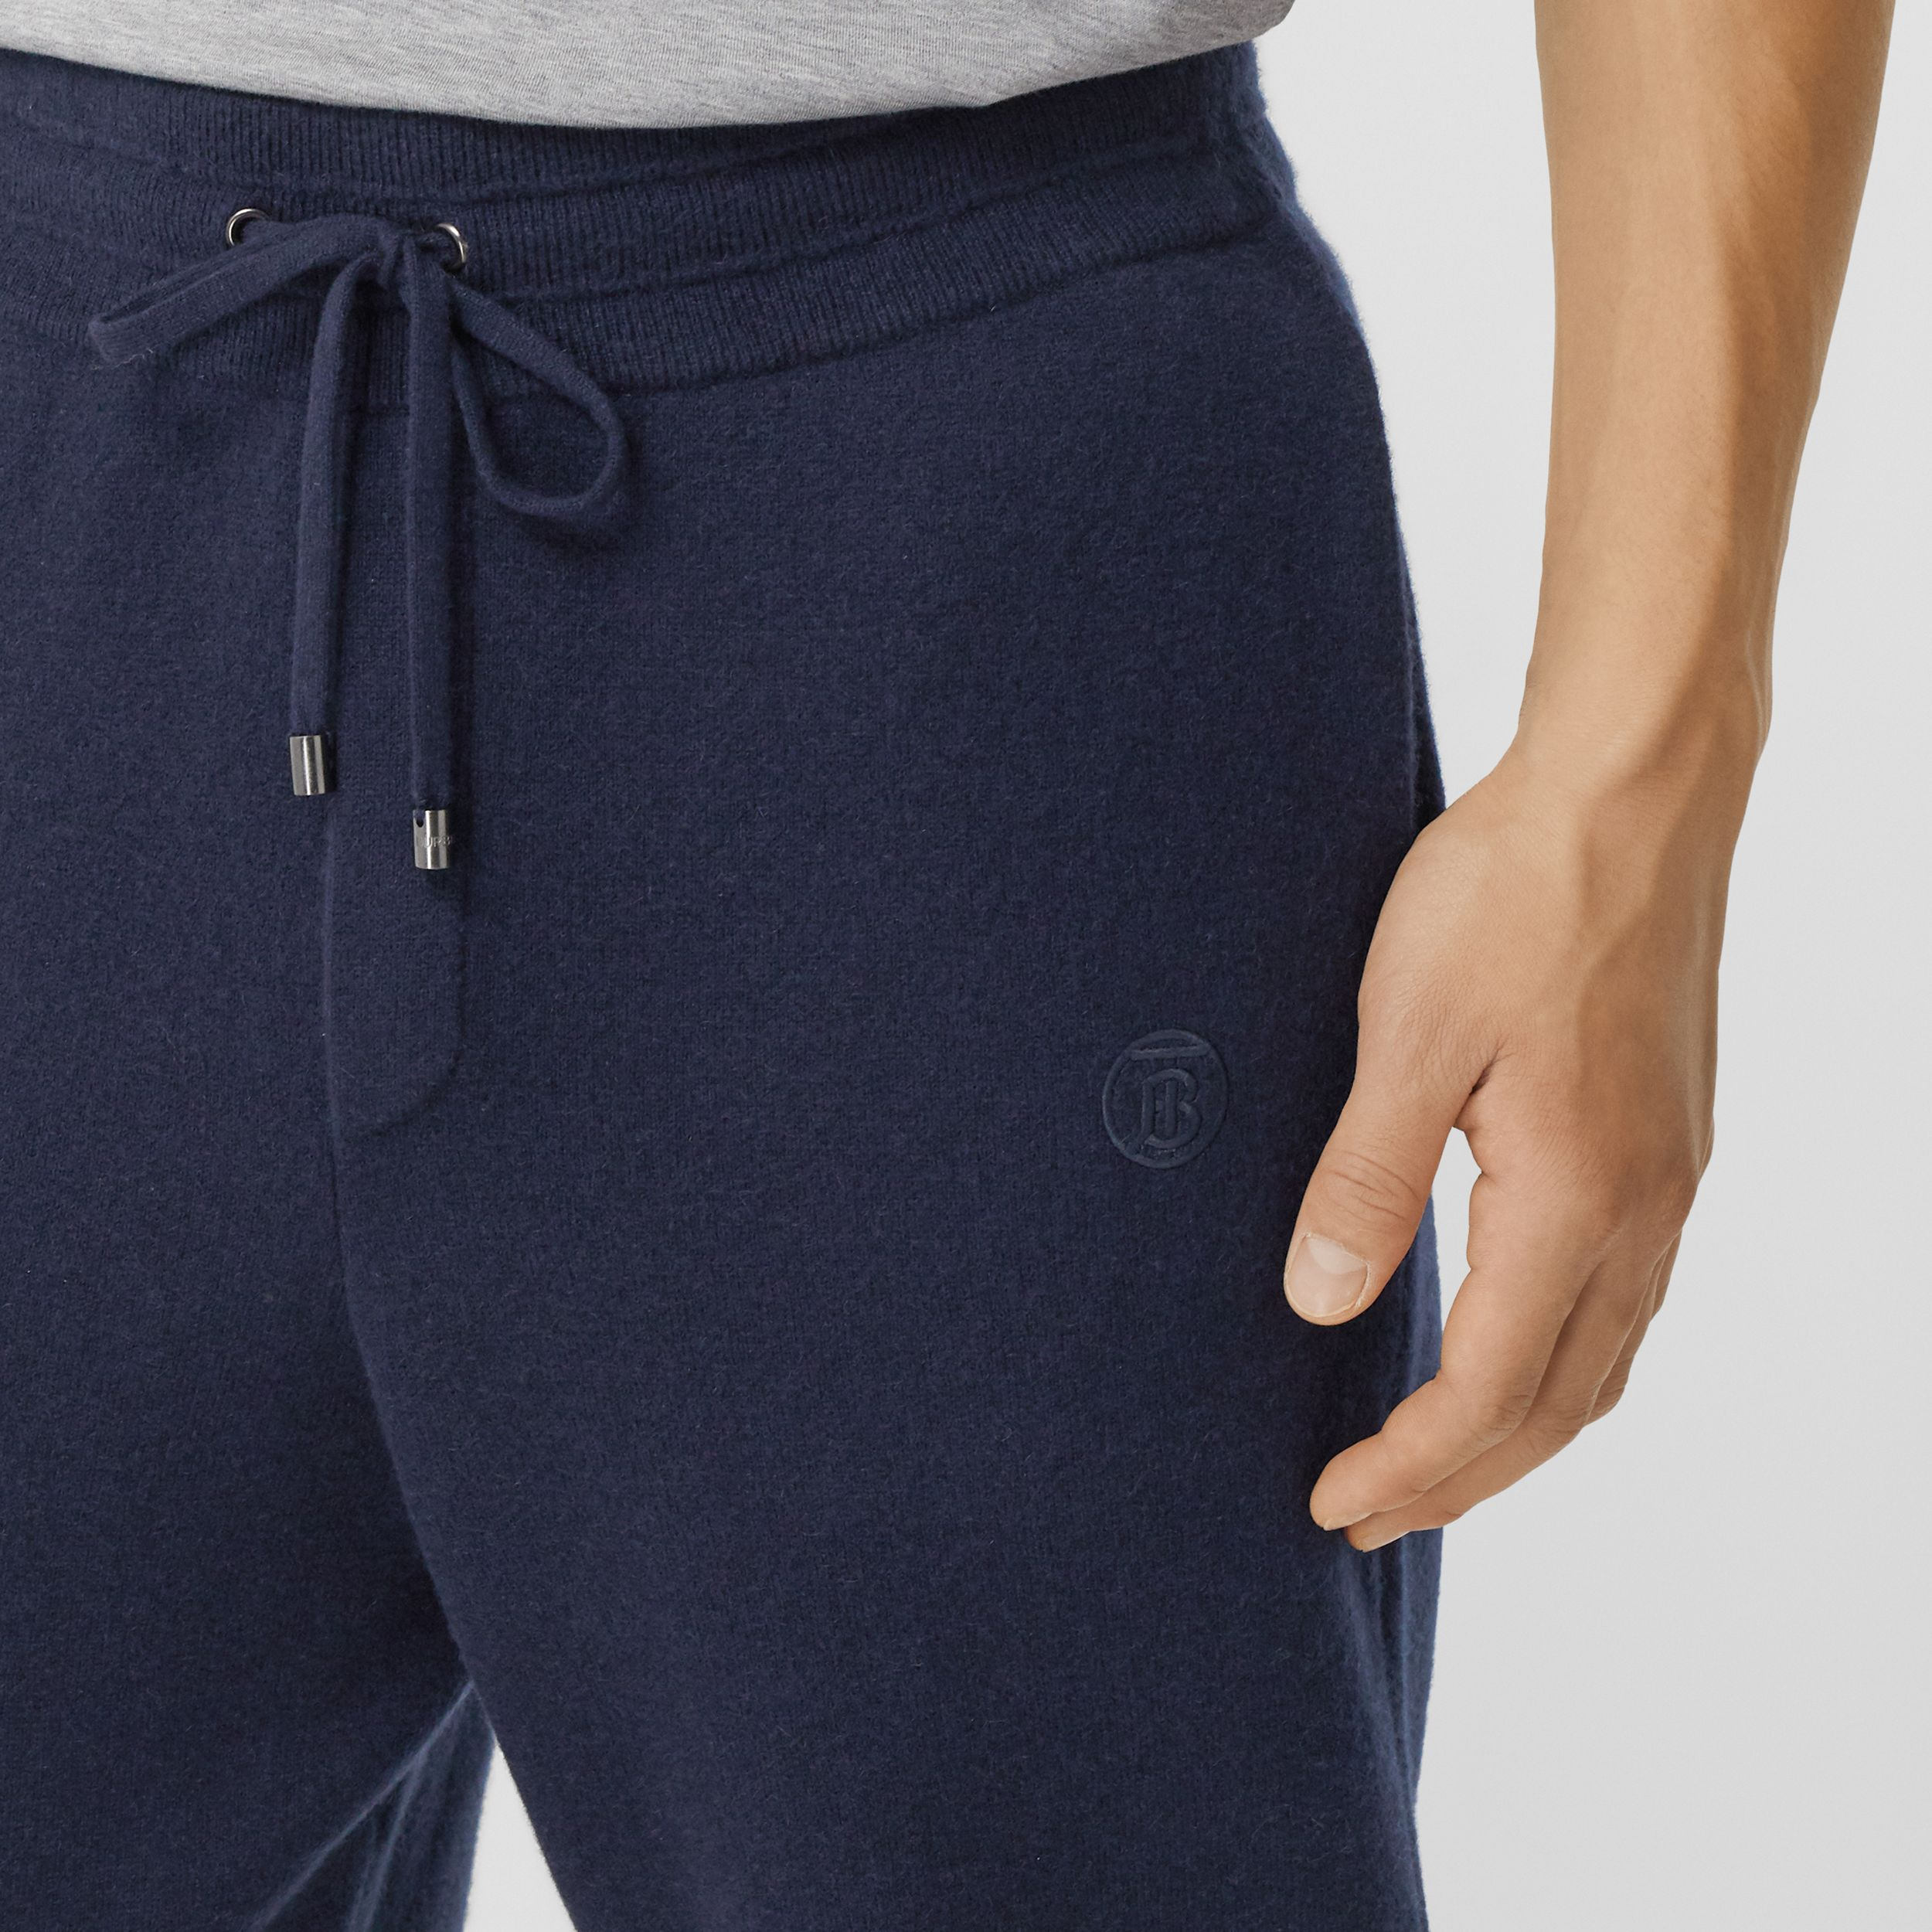 Monogram Motif Cashmere Blend Jogging Pants in Navy - Men | Burberry - 2